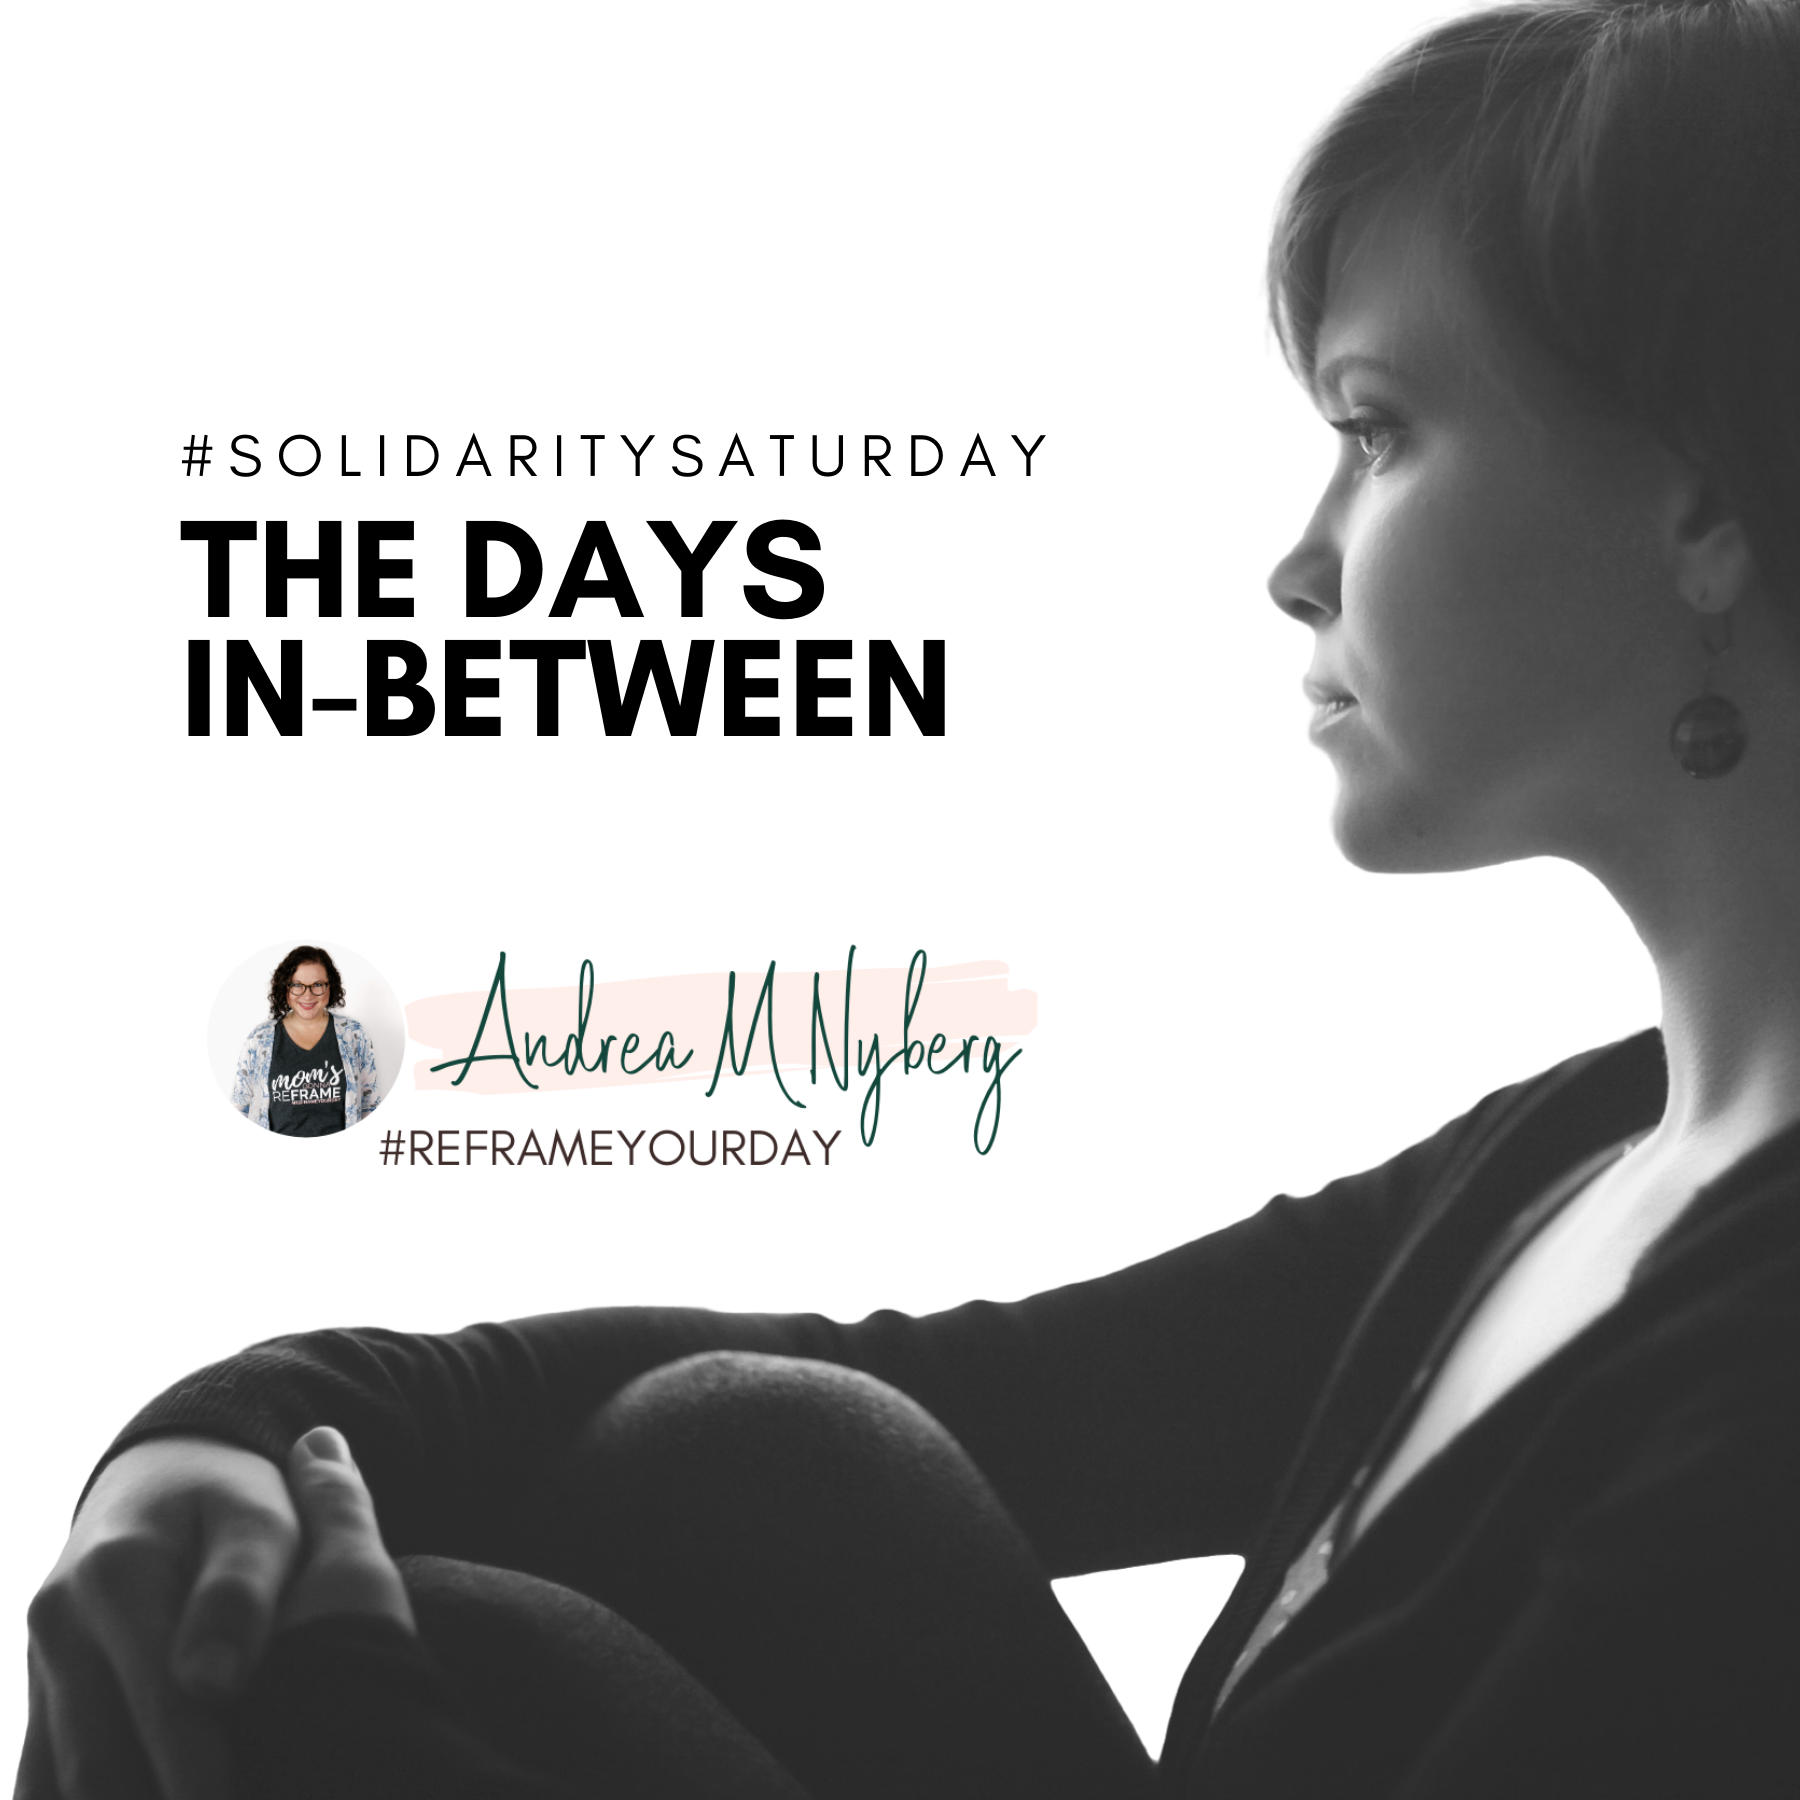 #SolidaritySaturday: Audacious Hope